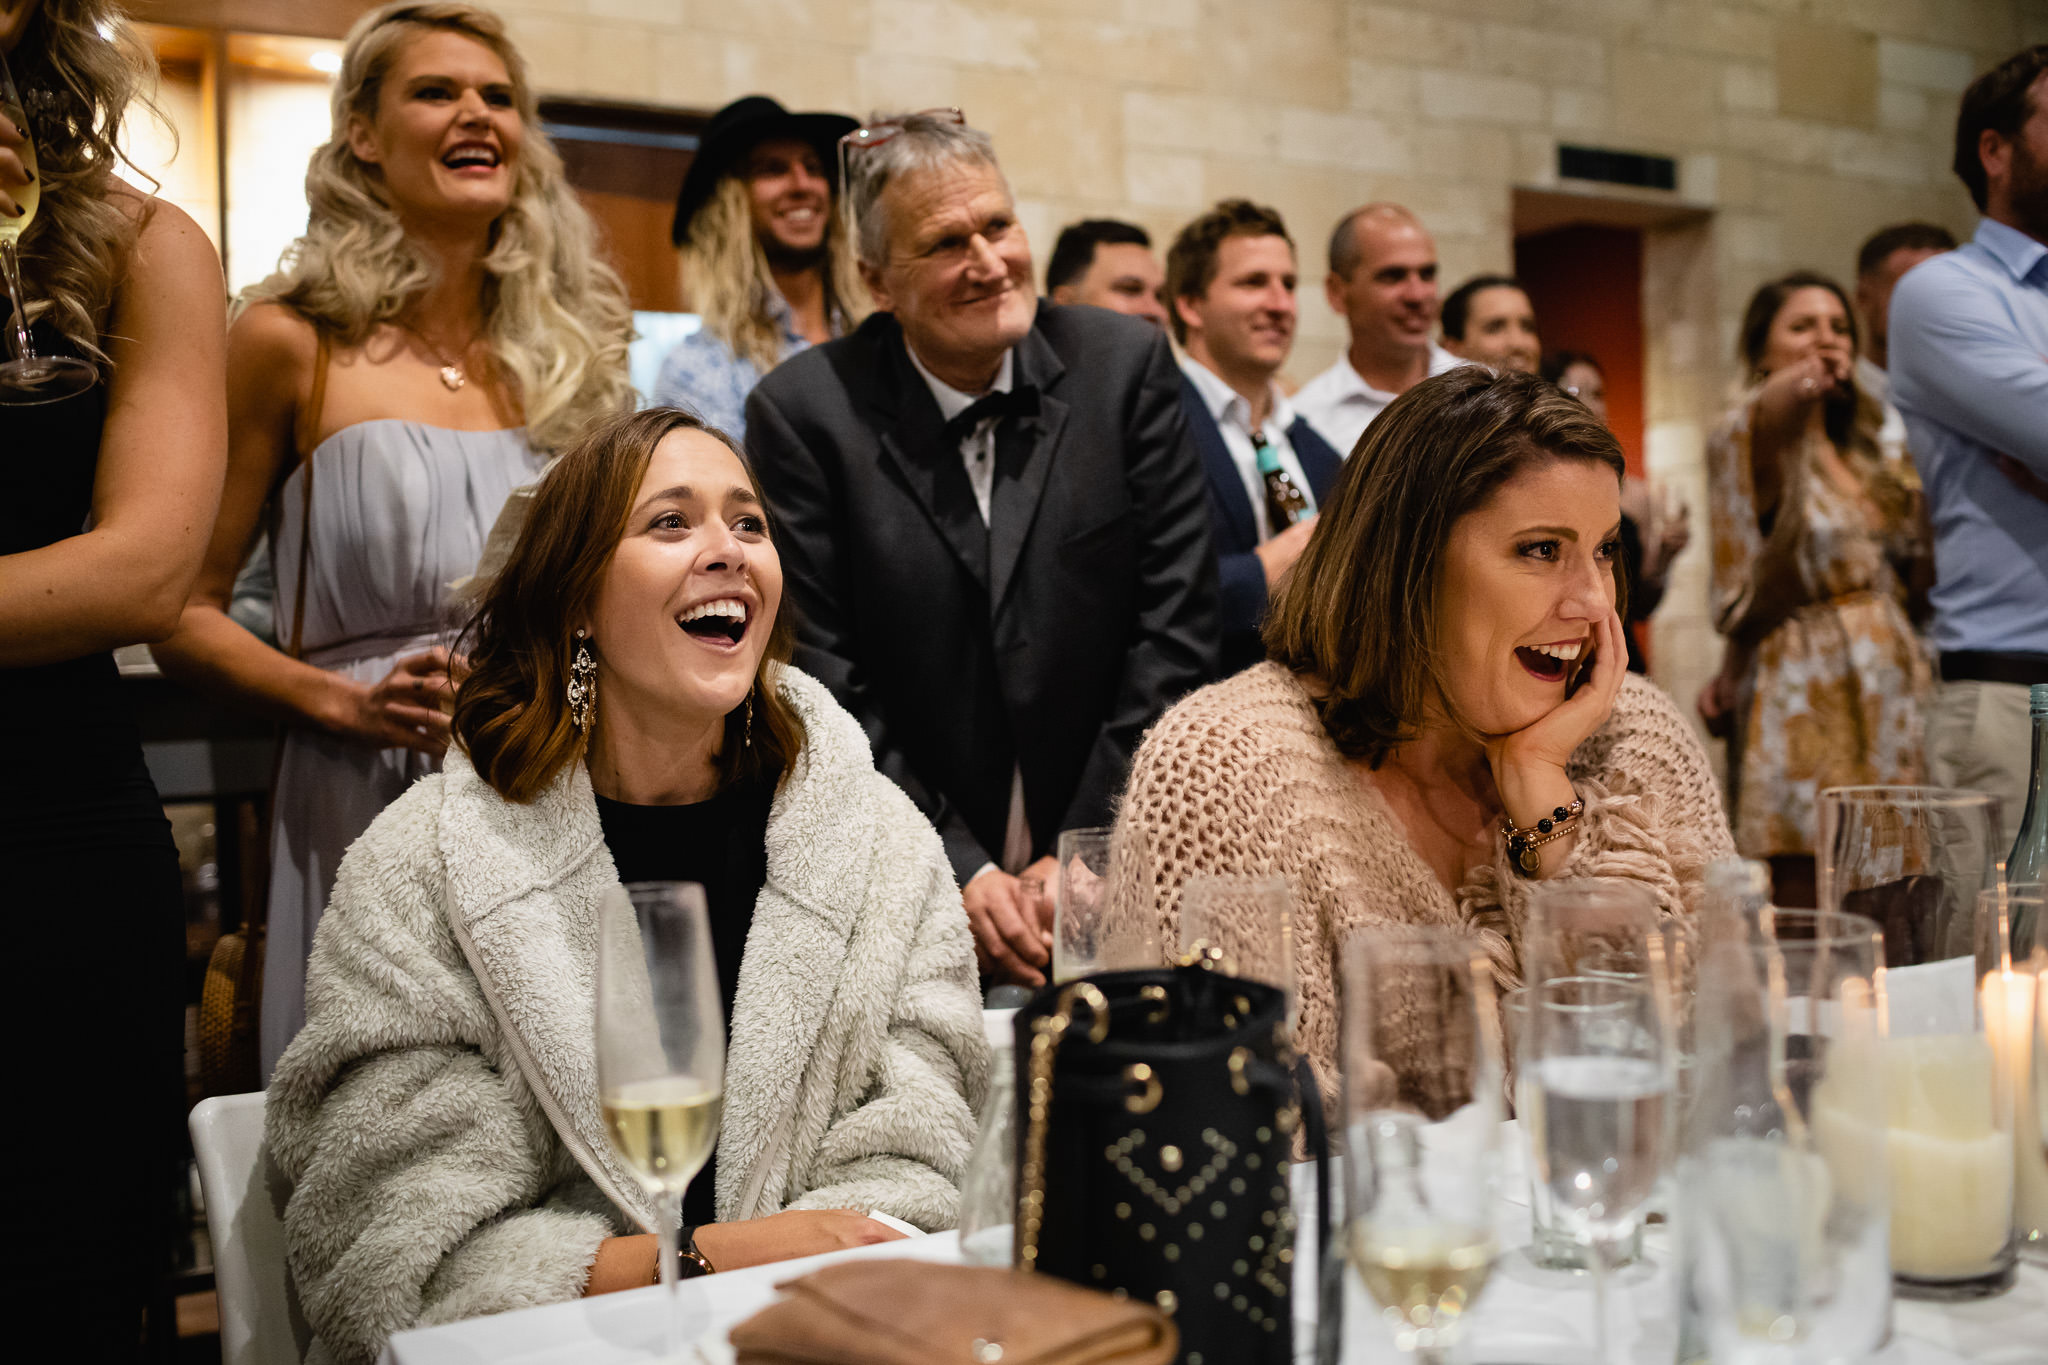 guests with glasses of champagne laughing during speeches at wedding reception at Bunker Bay cafe